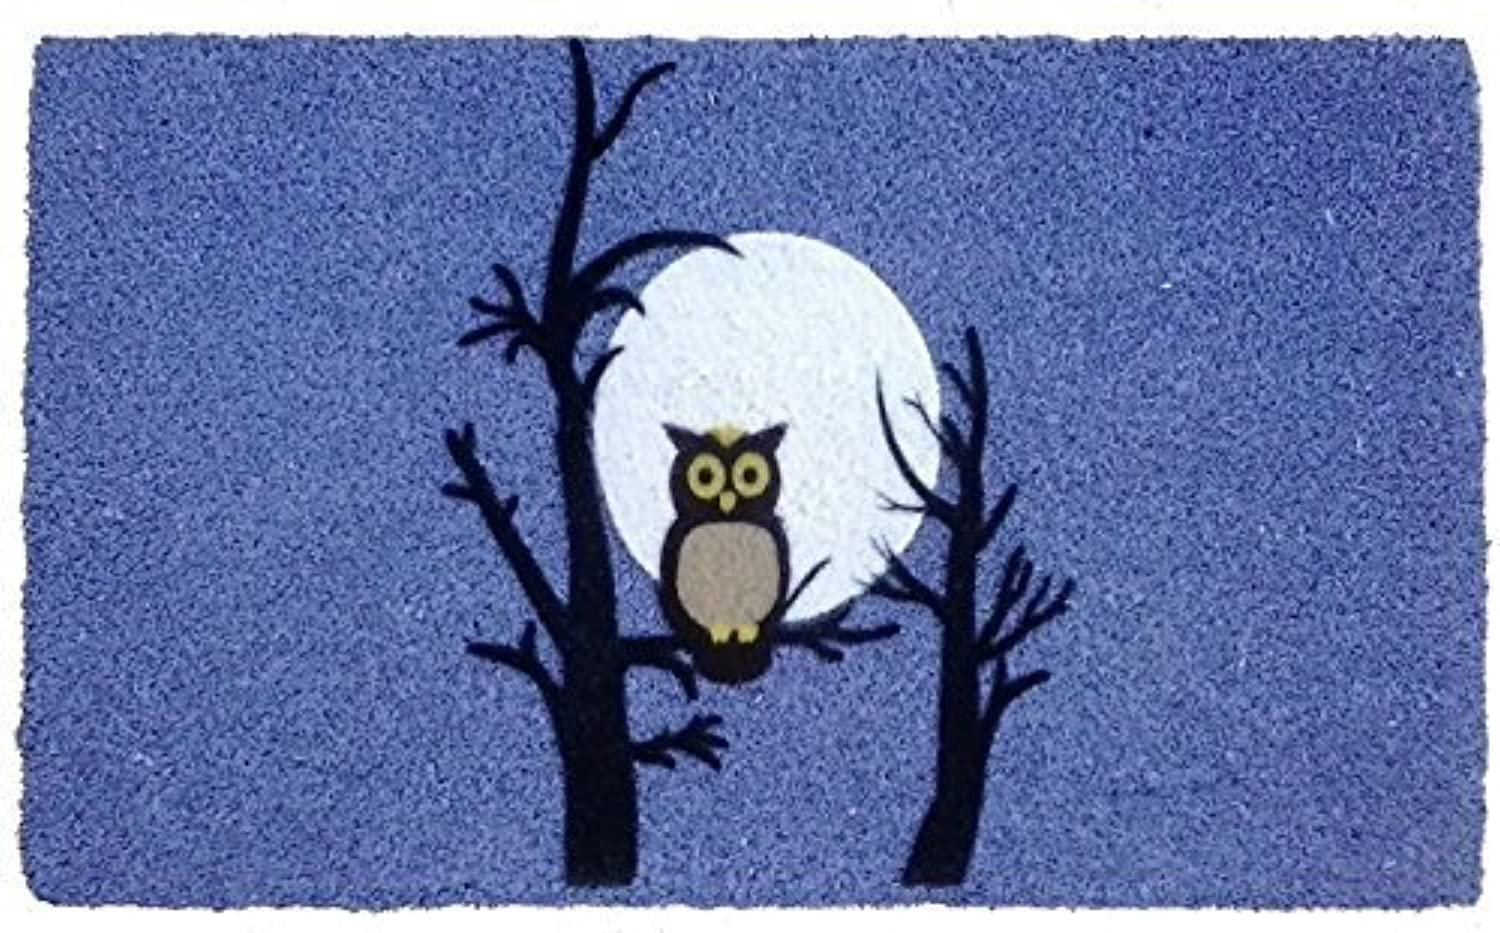 Imports Decor Night Owl Vinyl Backed Coir Doormat with Flocked Pattern, 30 x 18 x 1 2 by Imports